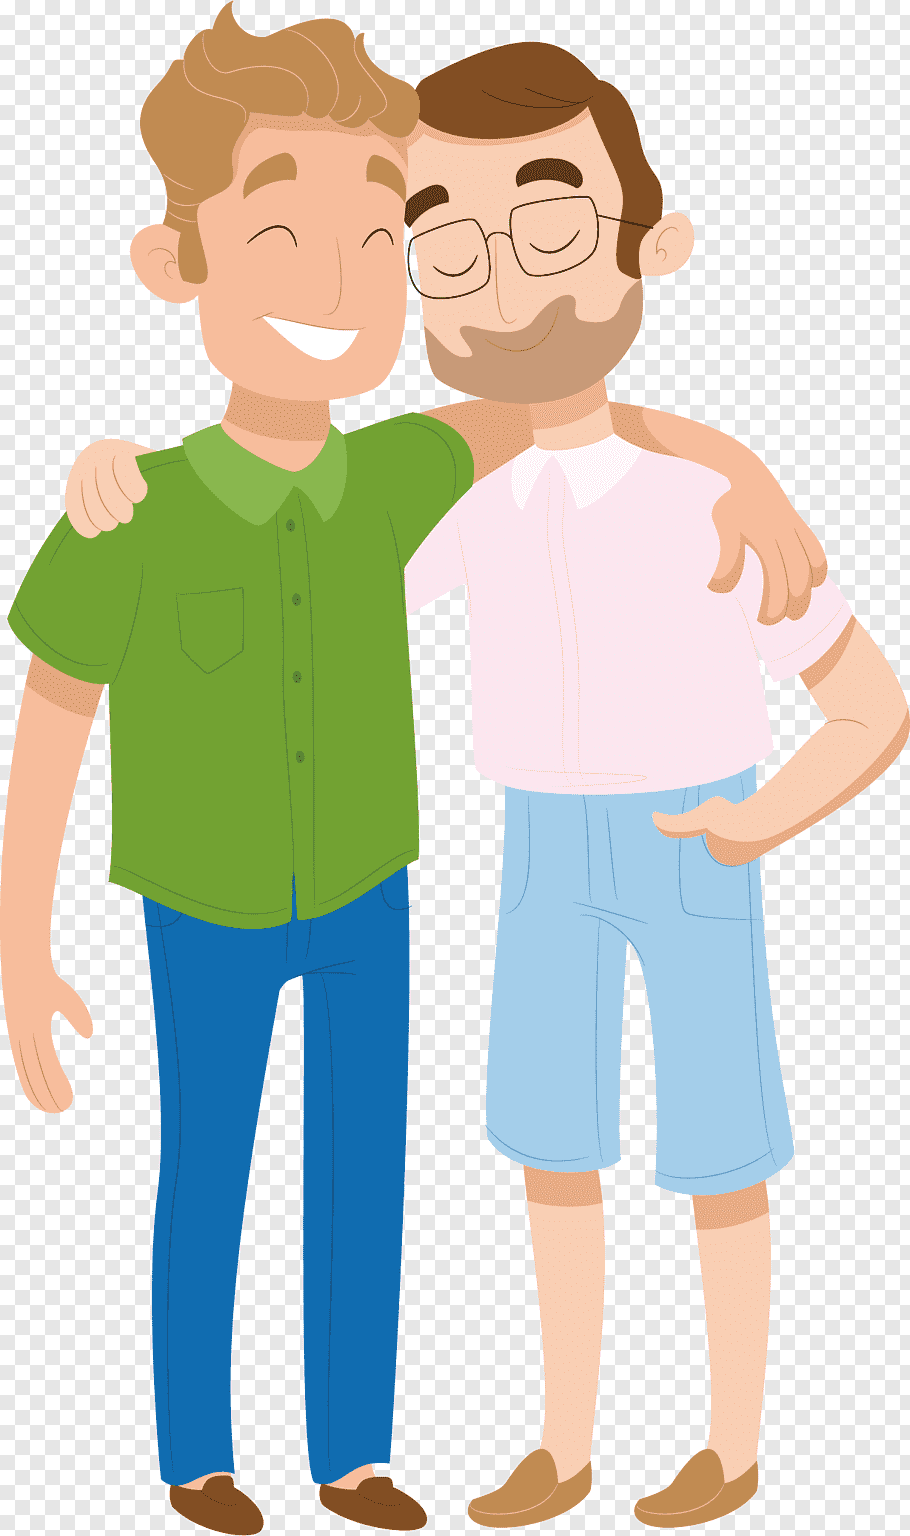 Two man standing illustration, Friendship Intimate.